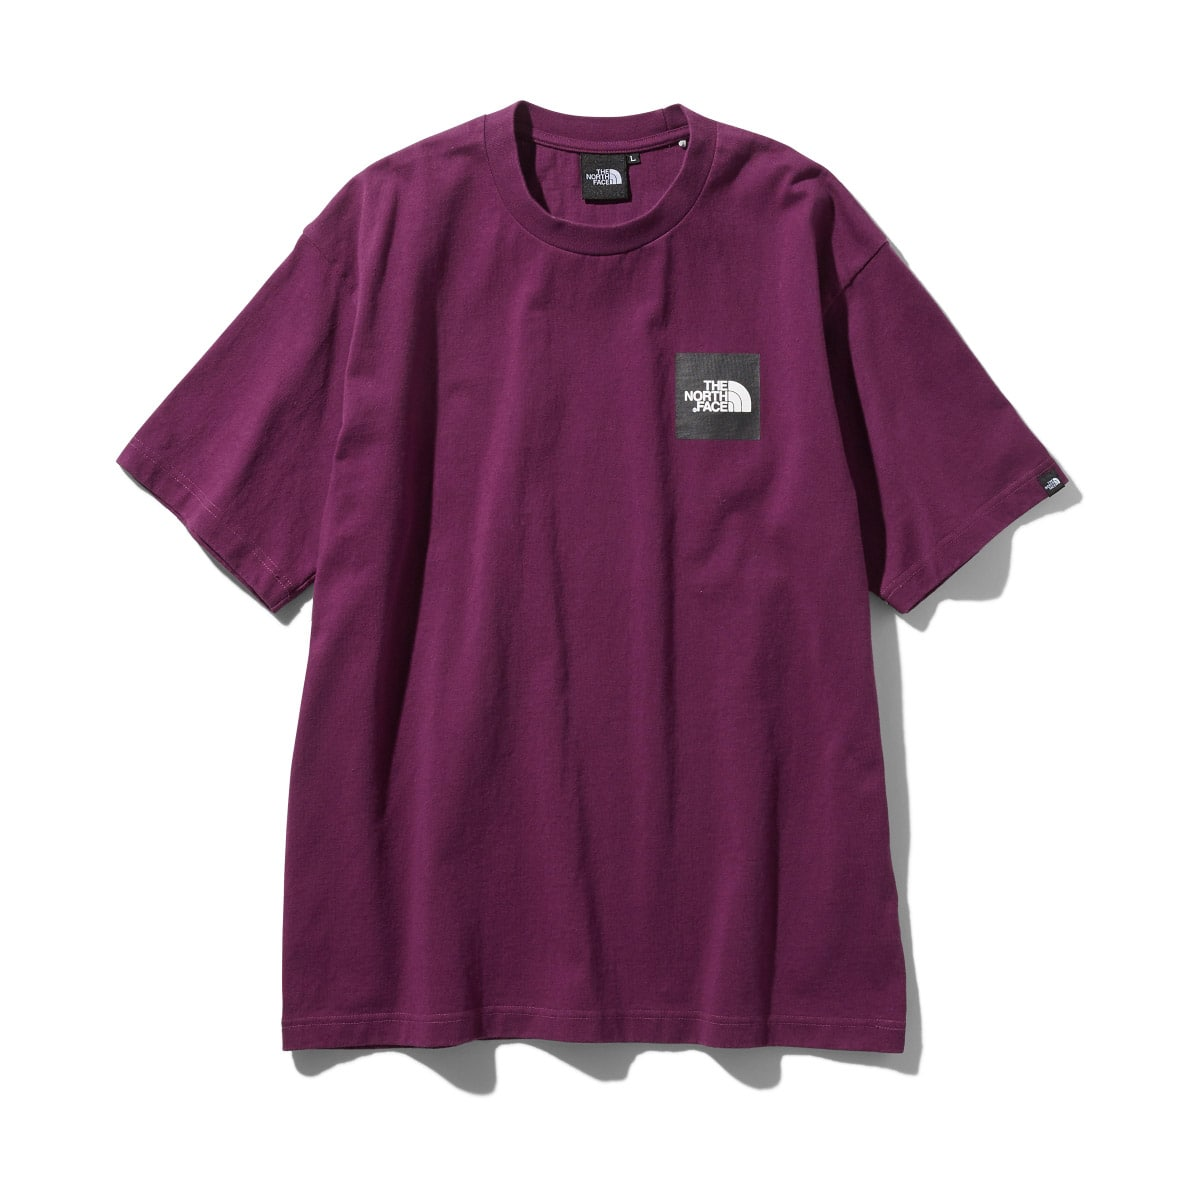 THE NORTH FACE S/S SQUARE LOGO TEE パンプロナパープル 19FW-I_photo_large